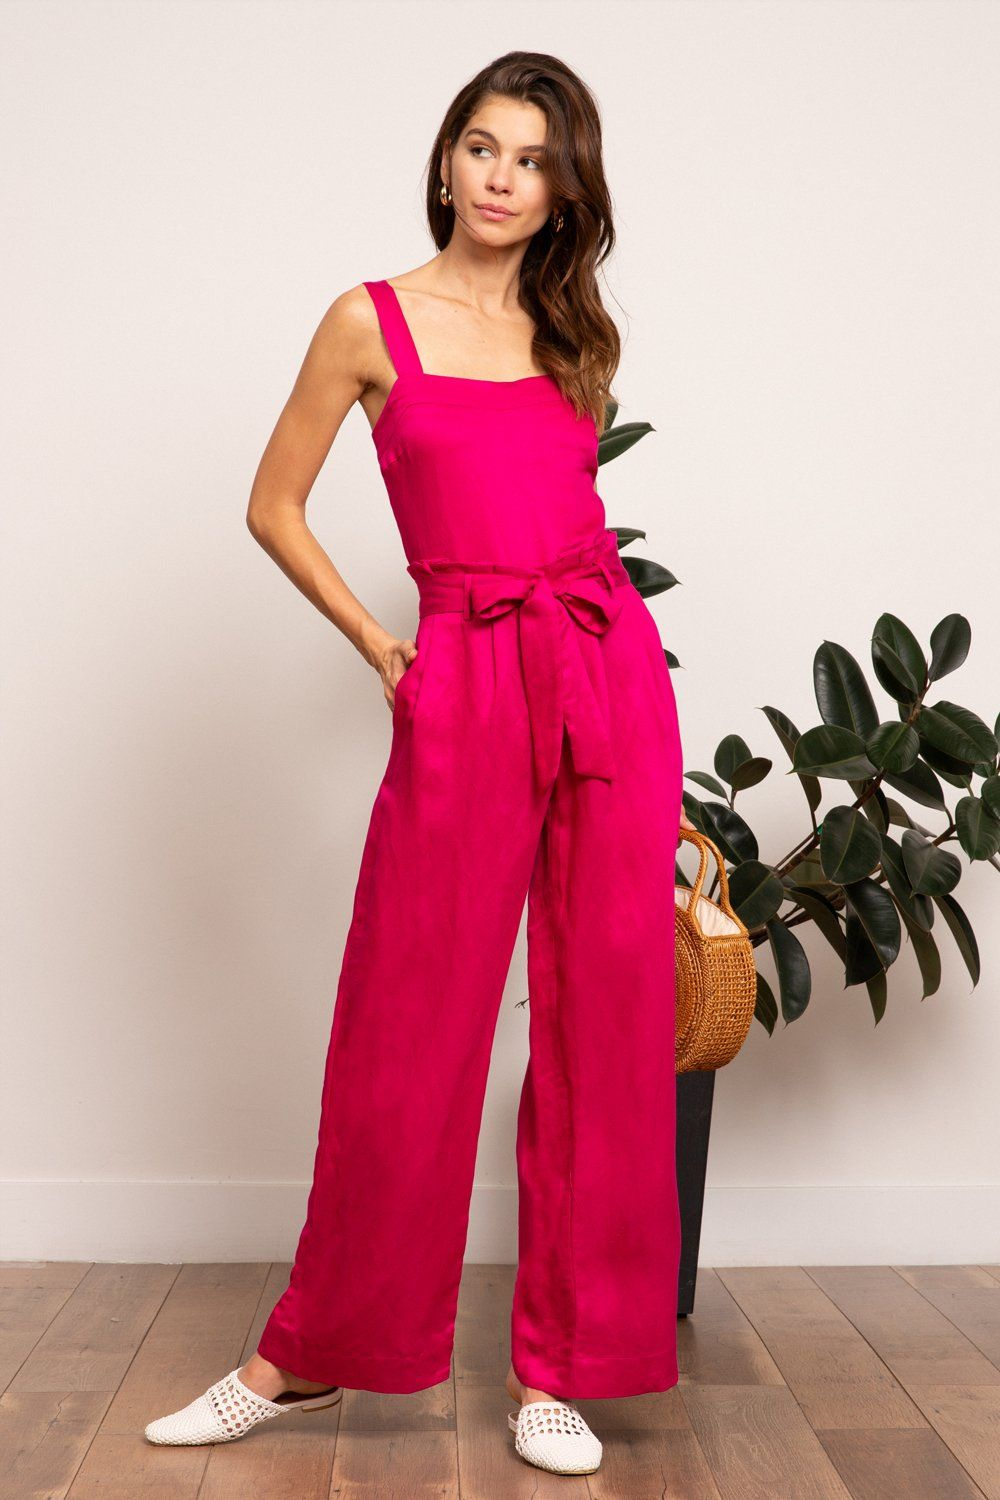 ee55ed80866 LUCY PARIS - Grace Paperbag Pant  LucyParis  hotpink  fashion  spring   springstyle  resort